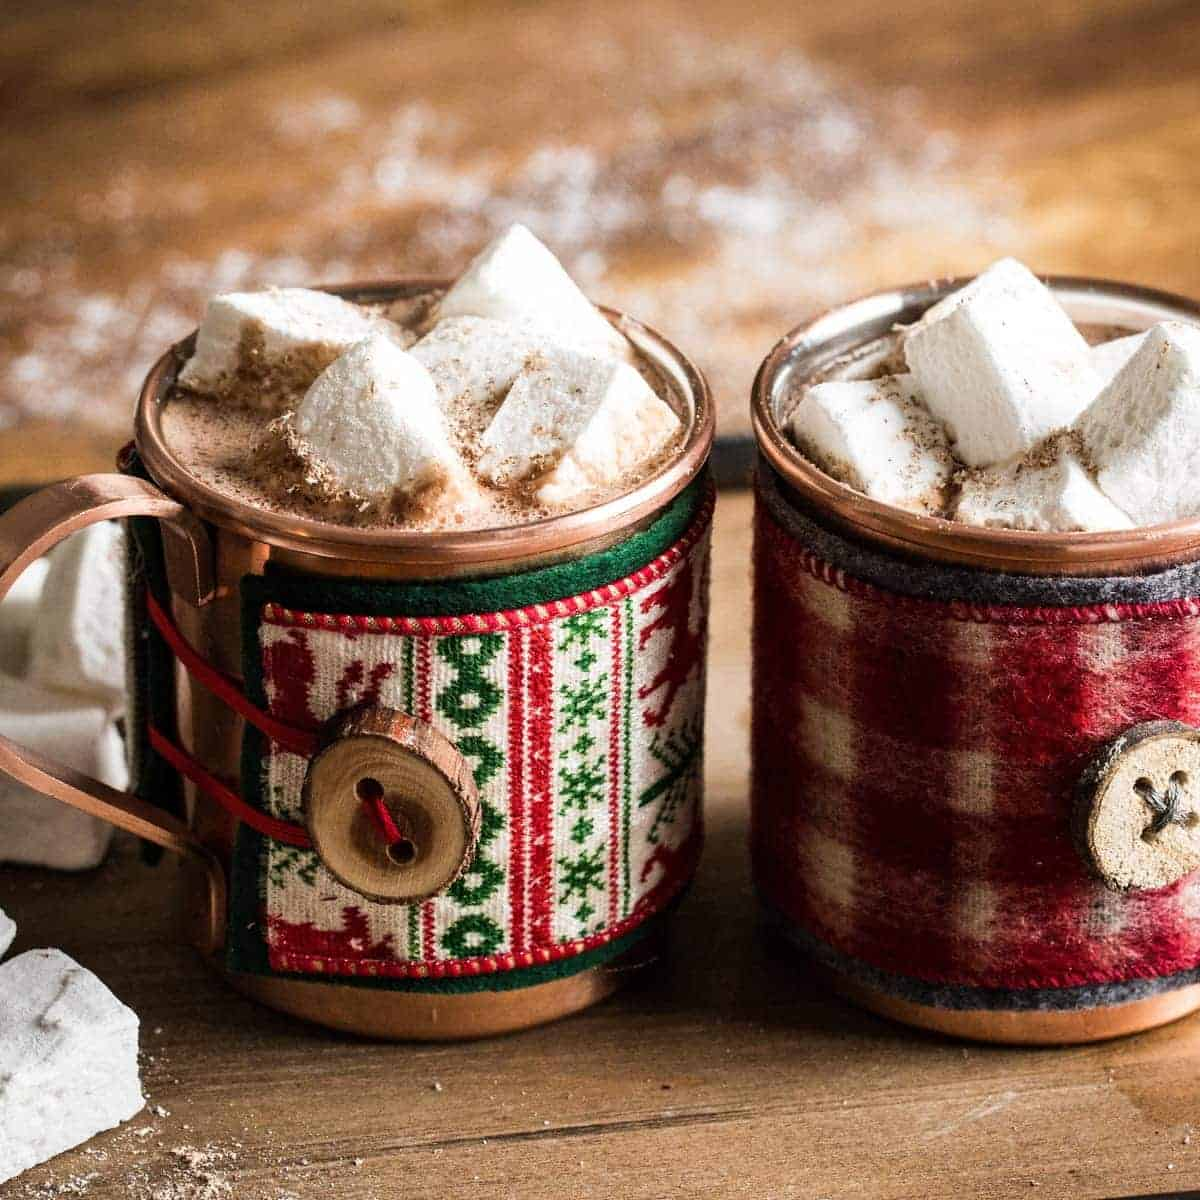 Homemade Marshmallows – Fluffy, Sweet and So Easy